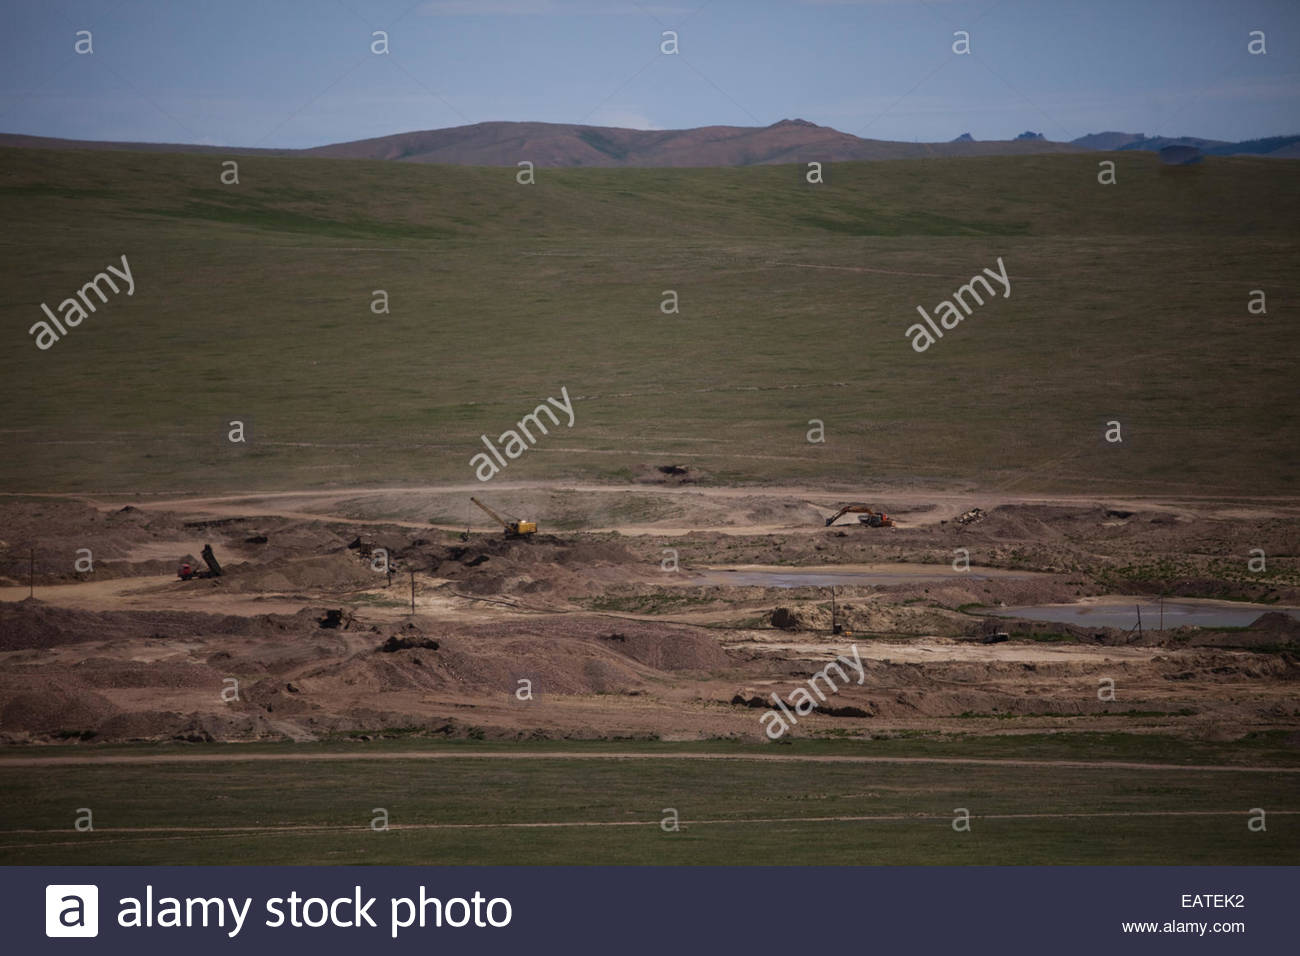 Gold miners on the steppe. - Stock Image